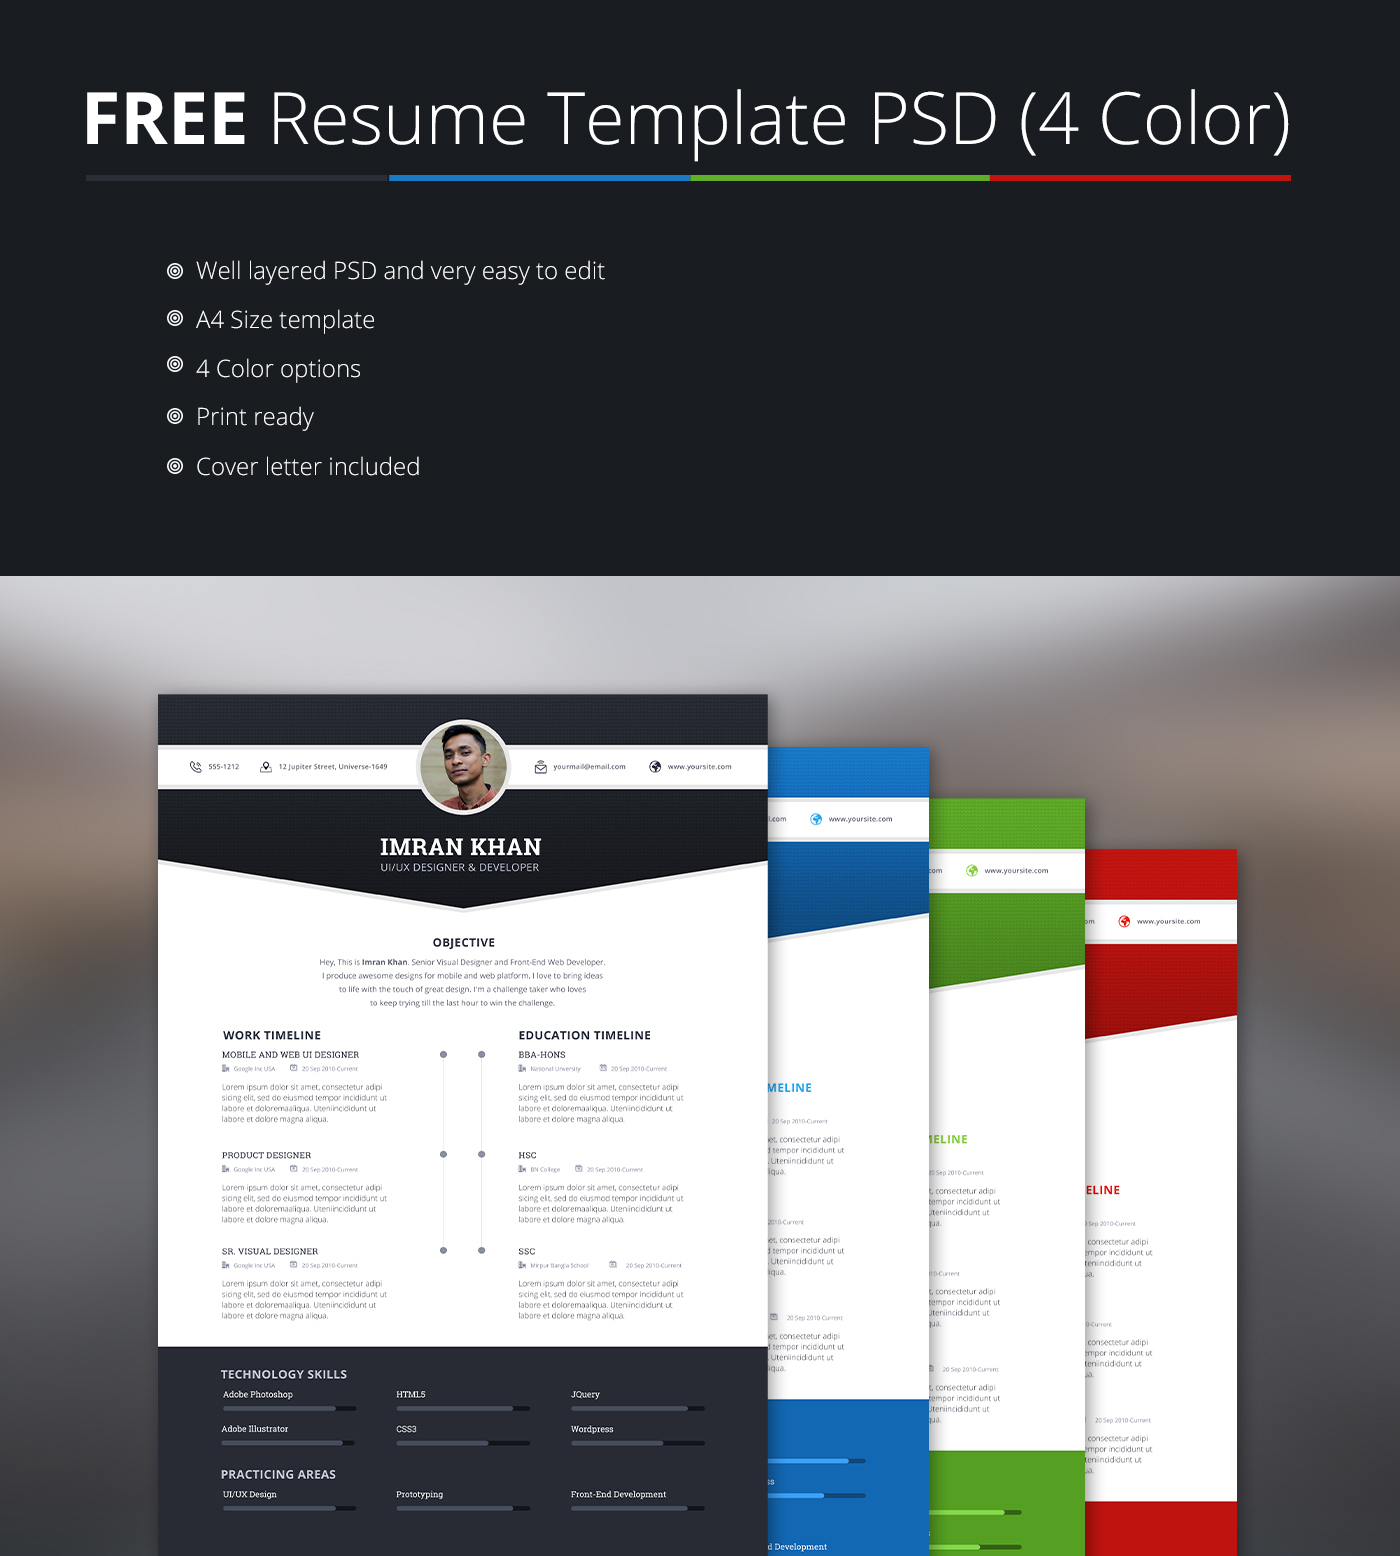 template resume free free resume template psd colors on behance